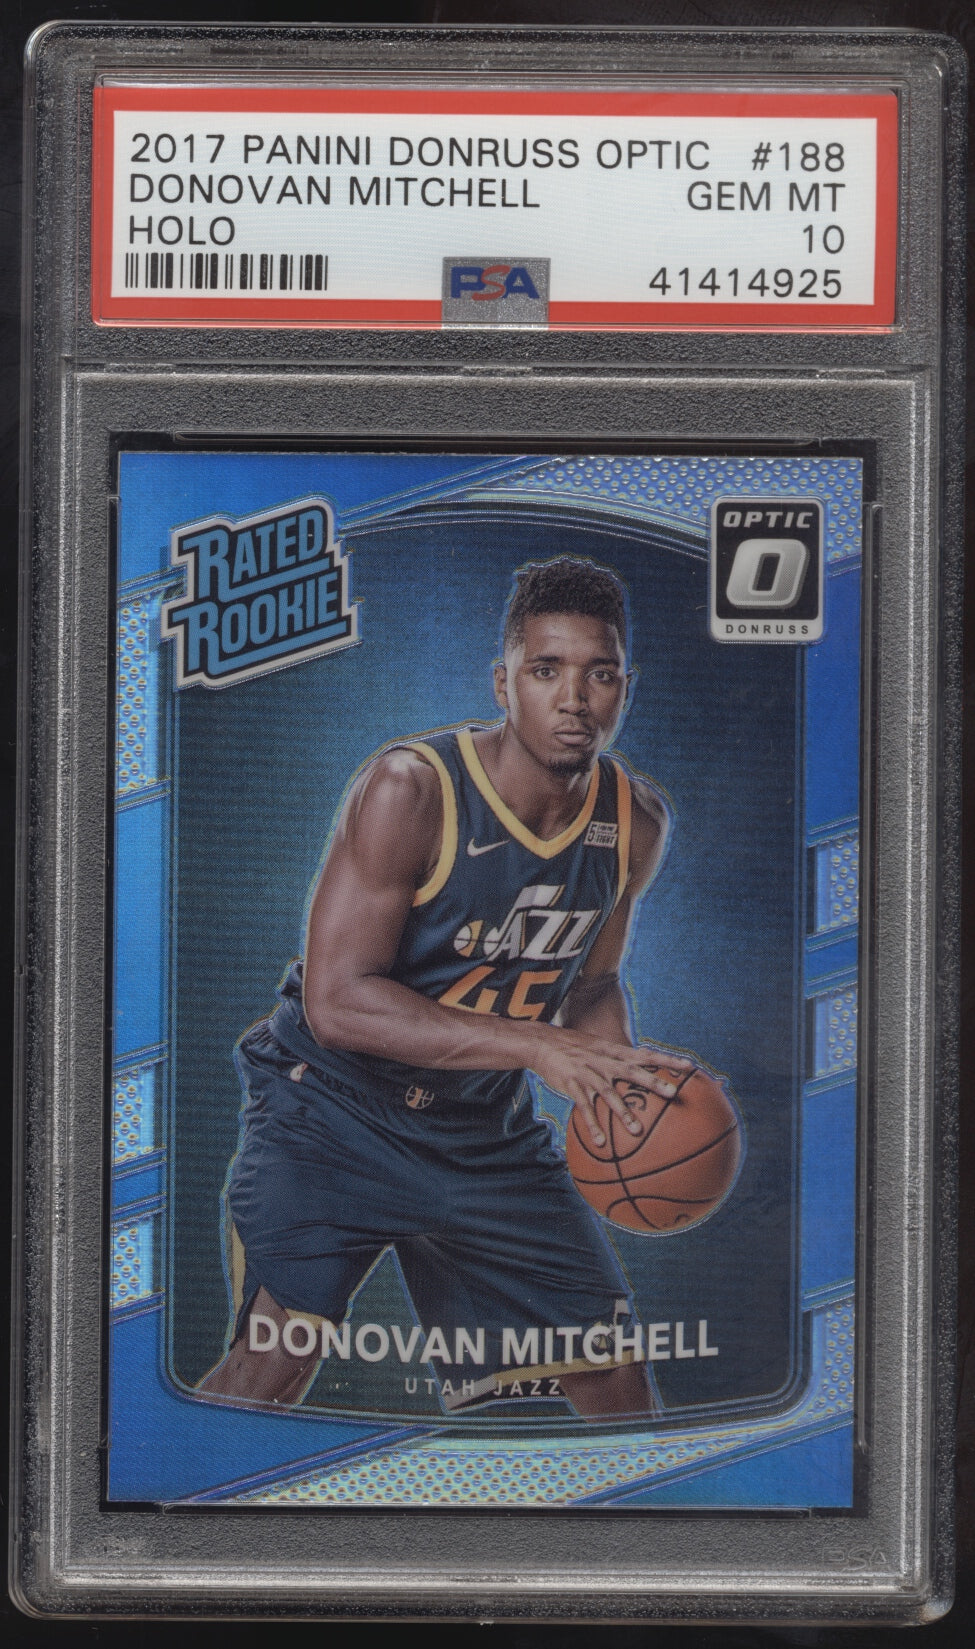 4028db661 2017-18 Donruss Optic  188 Donovan Mitchell Silver Holo RC Rookie ...